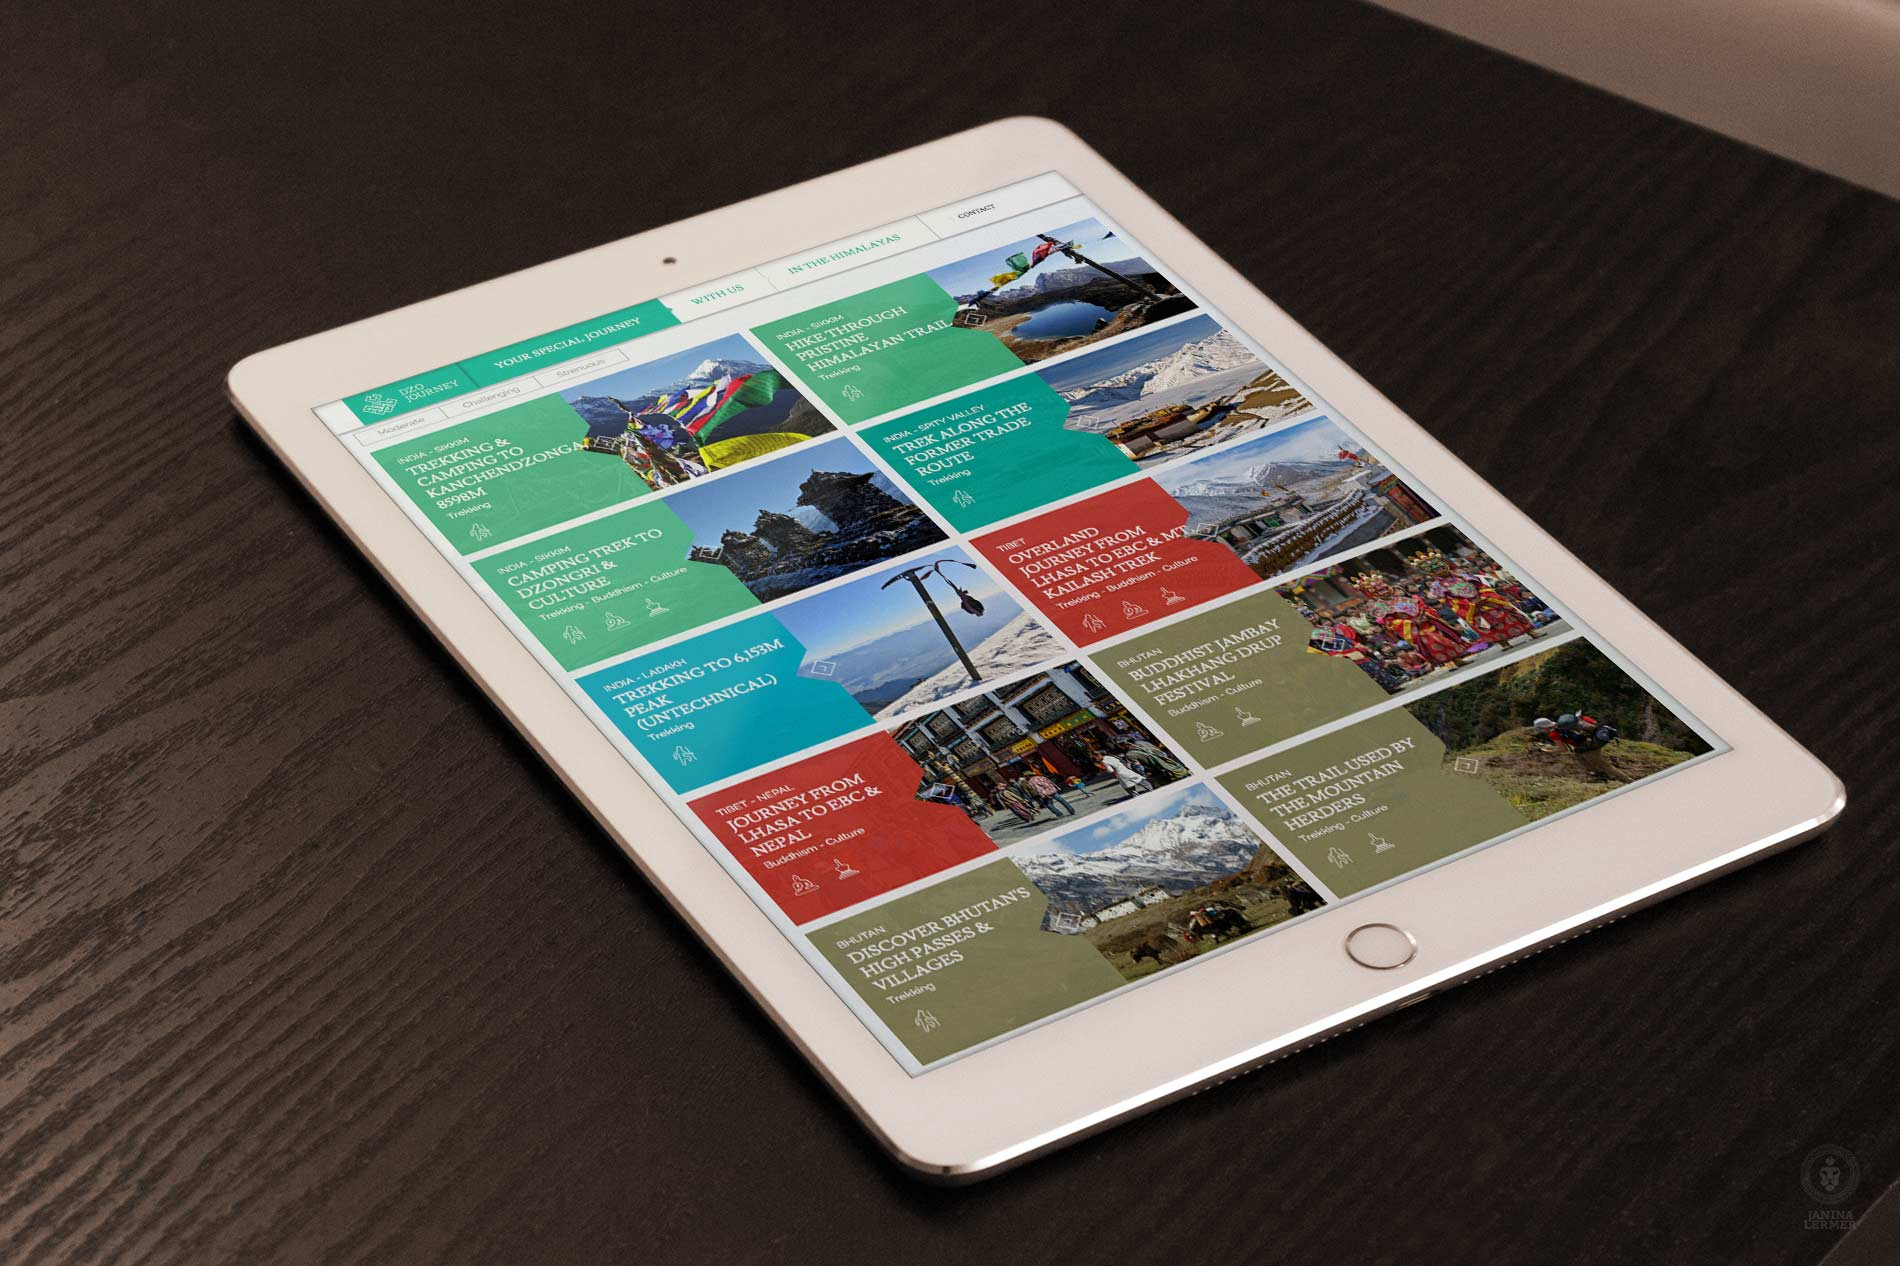 Webseitengestaltung-Webdesign-Travelcompany-Reisefirma-Himalaya-Dzo-Journey-Ipad-Reisen-Travel-Products